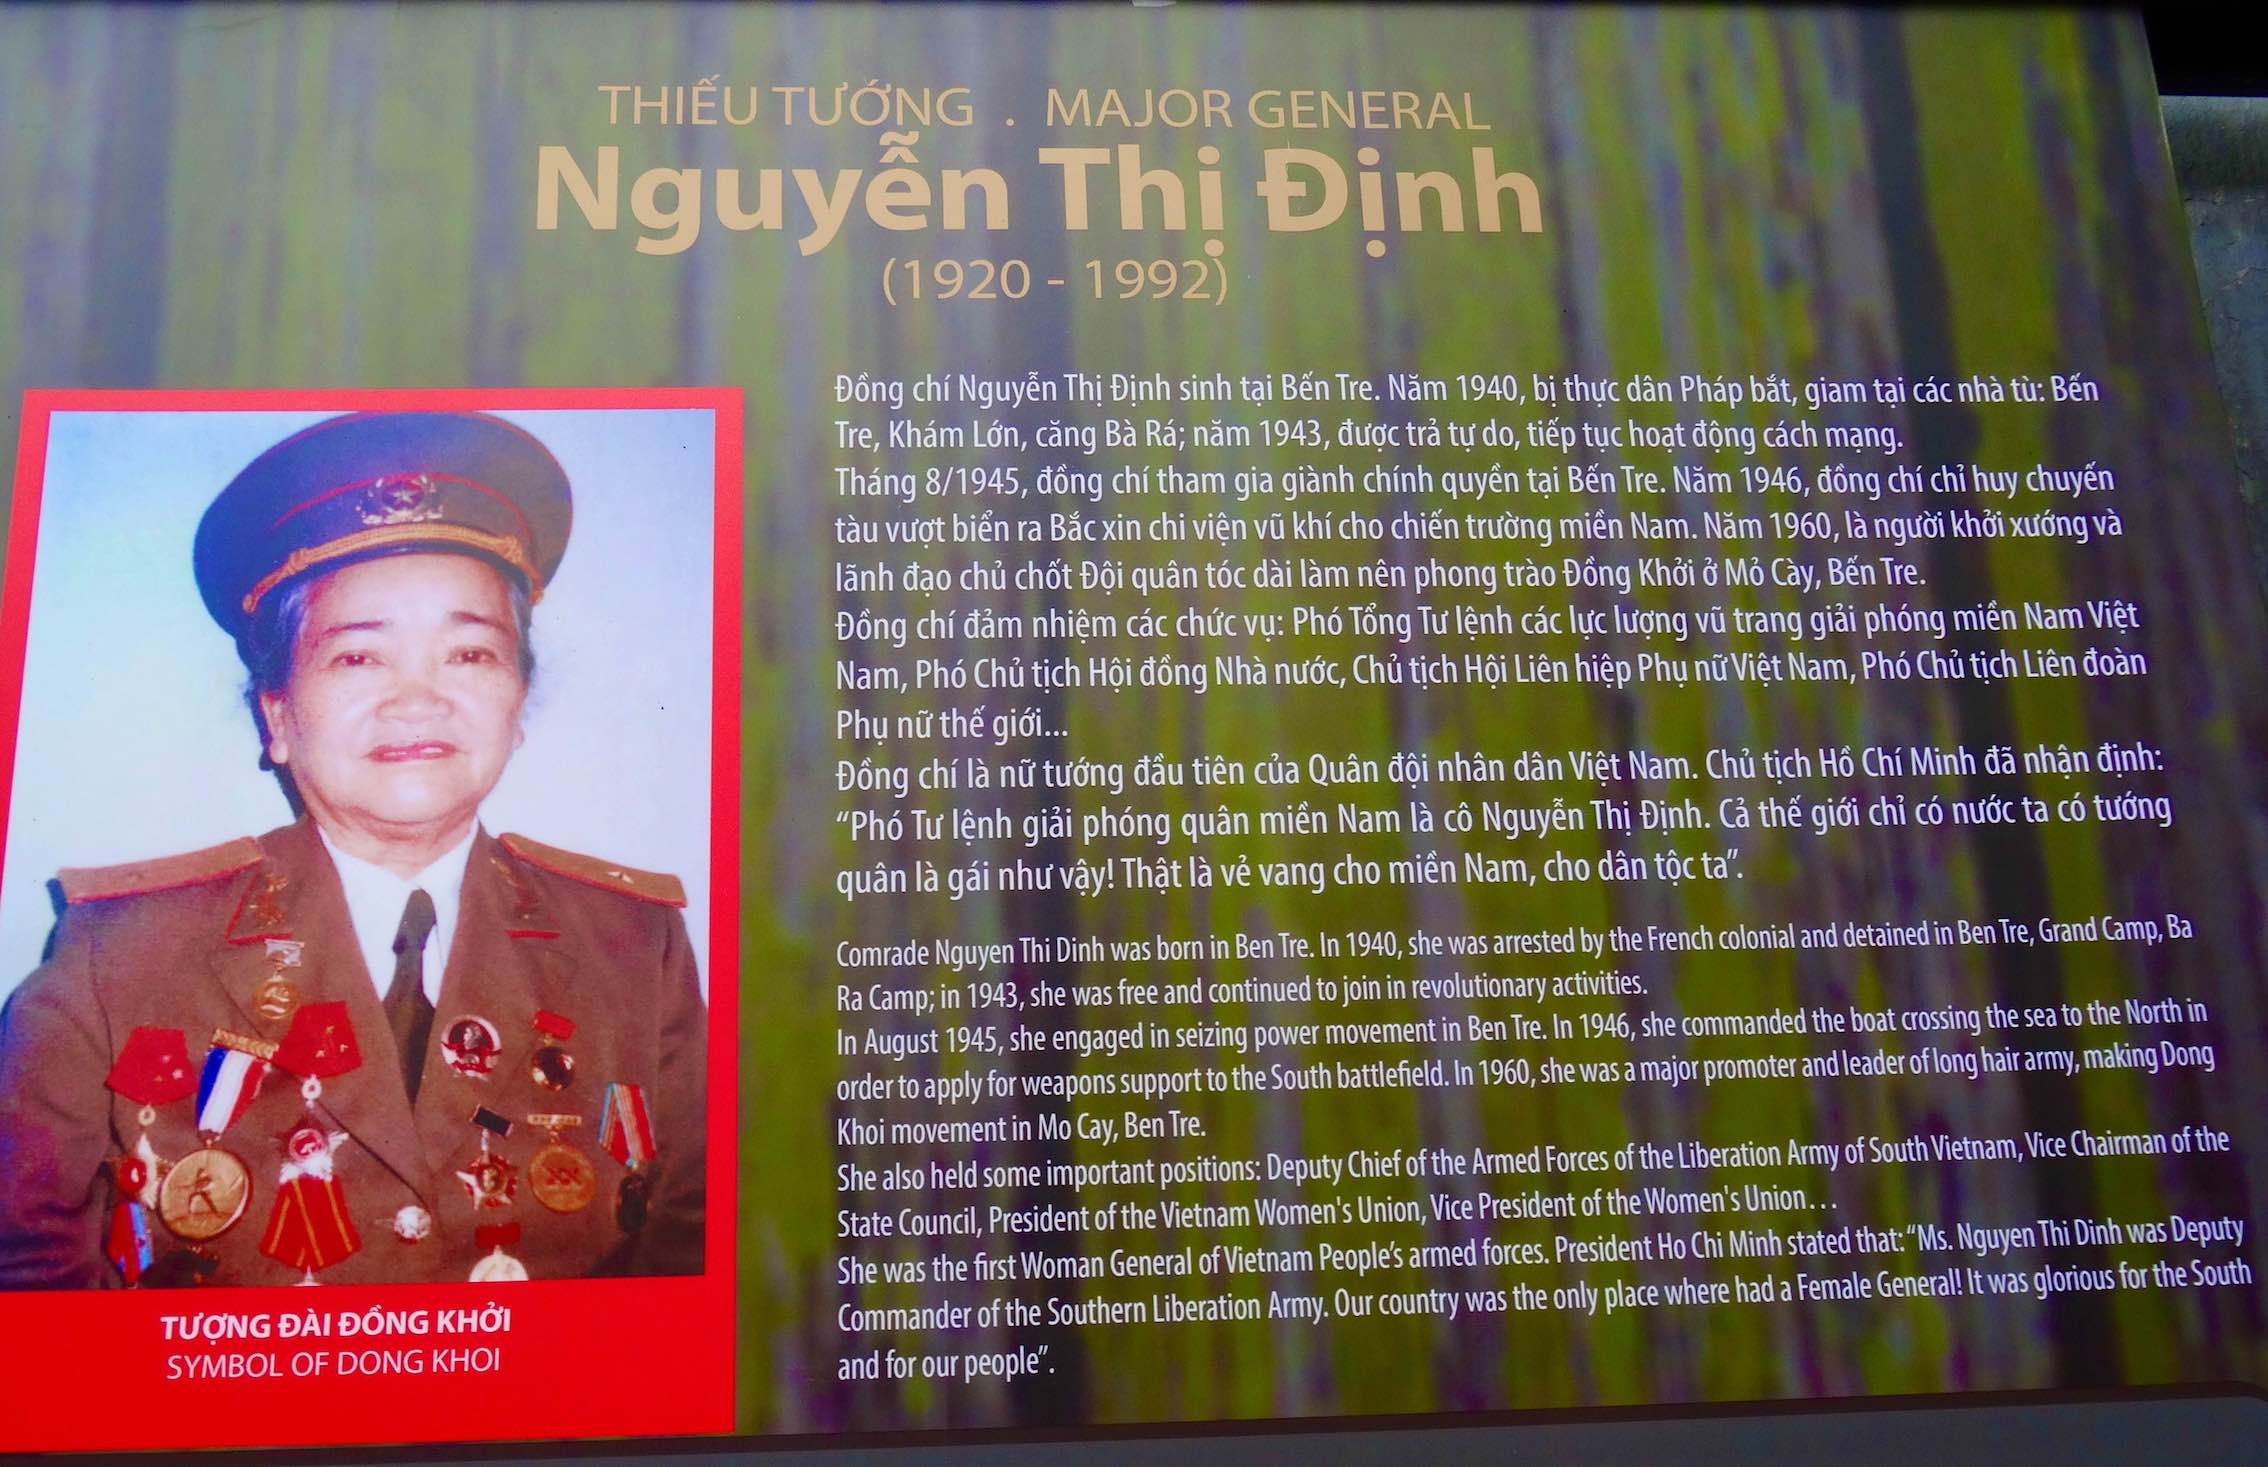 Nguyen Thi Dinh The first female General of the Vietnam People's Army